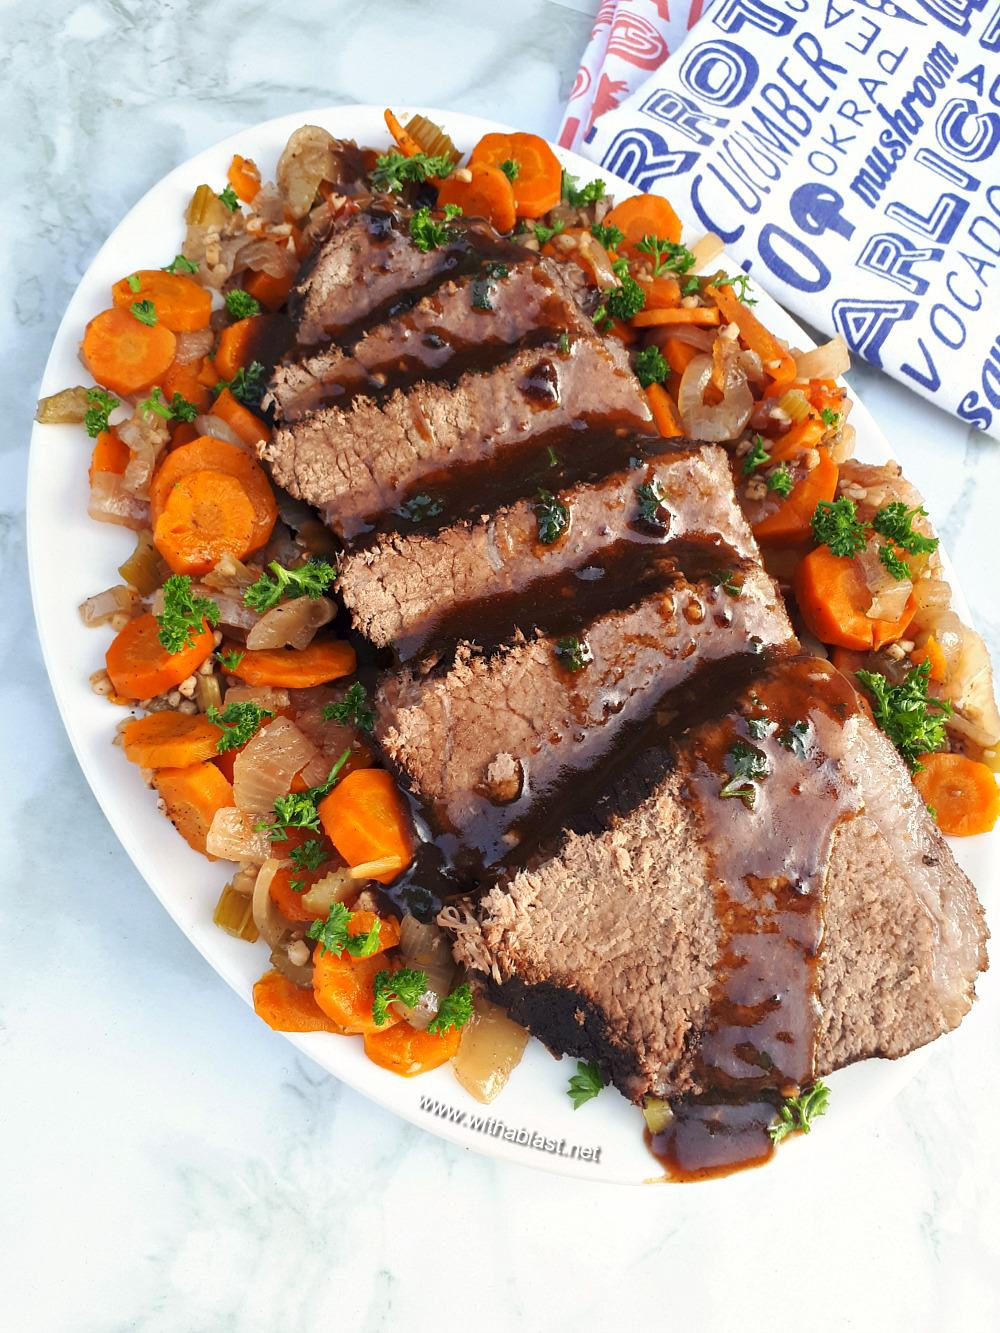 Best Slow-Cooker Pot Roast turns out so tender and juicy with vegetables all cooked in the slow-cooker - no fuss recipe and ideal for a Sunday roast !